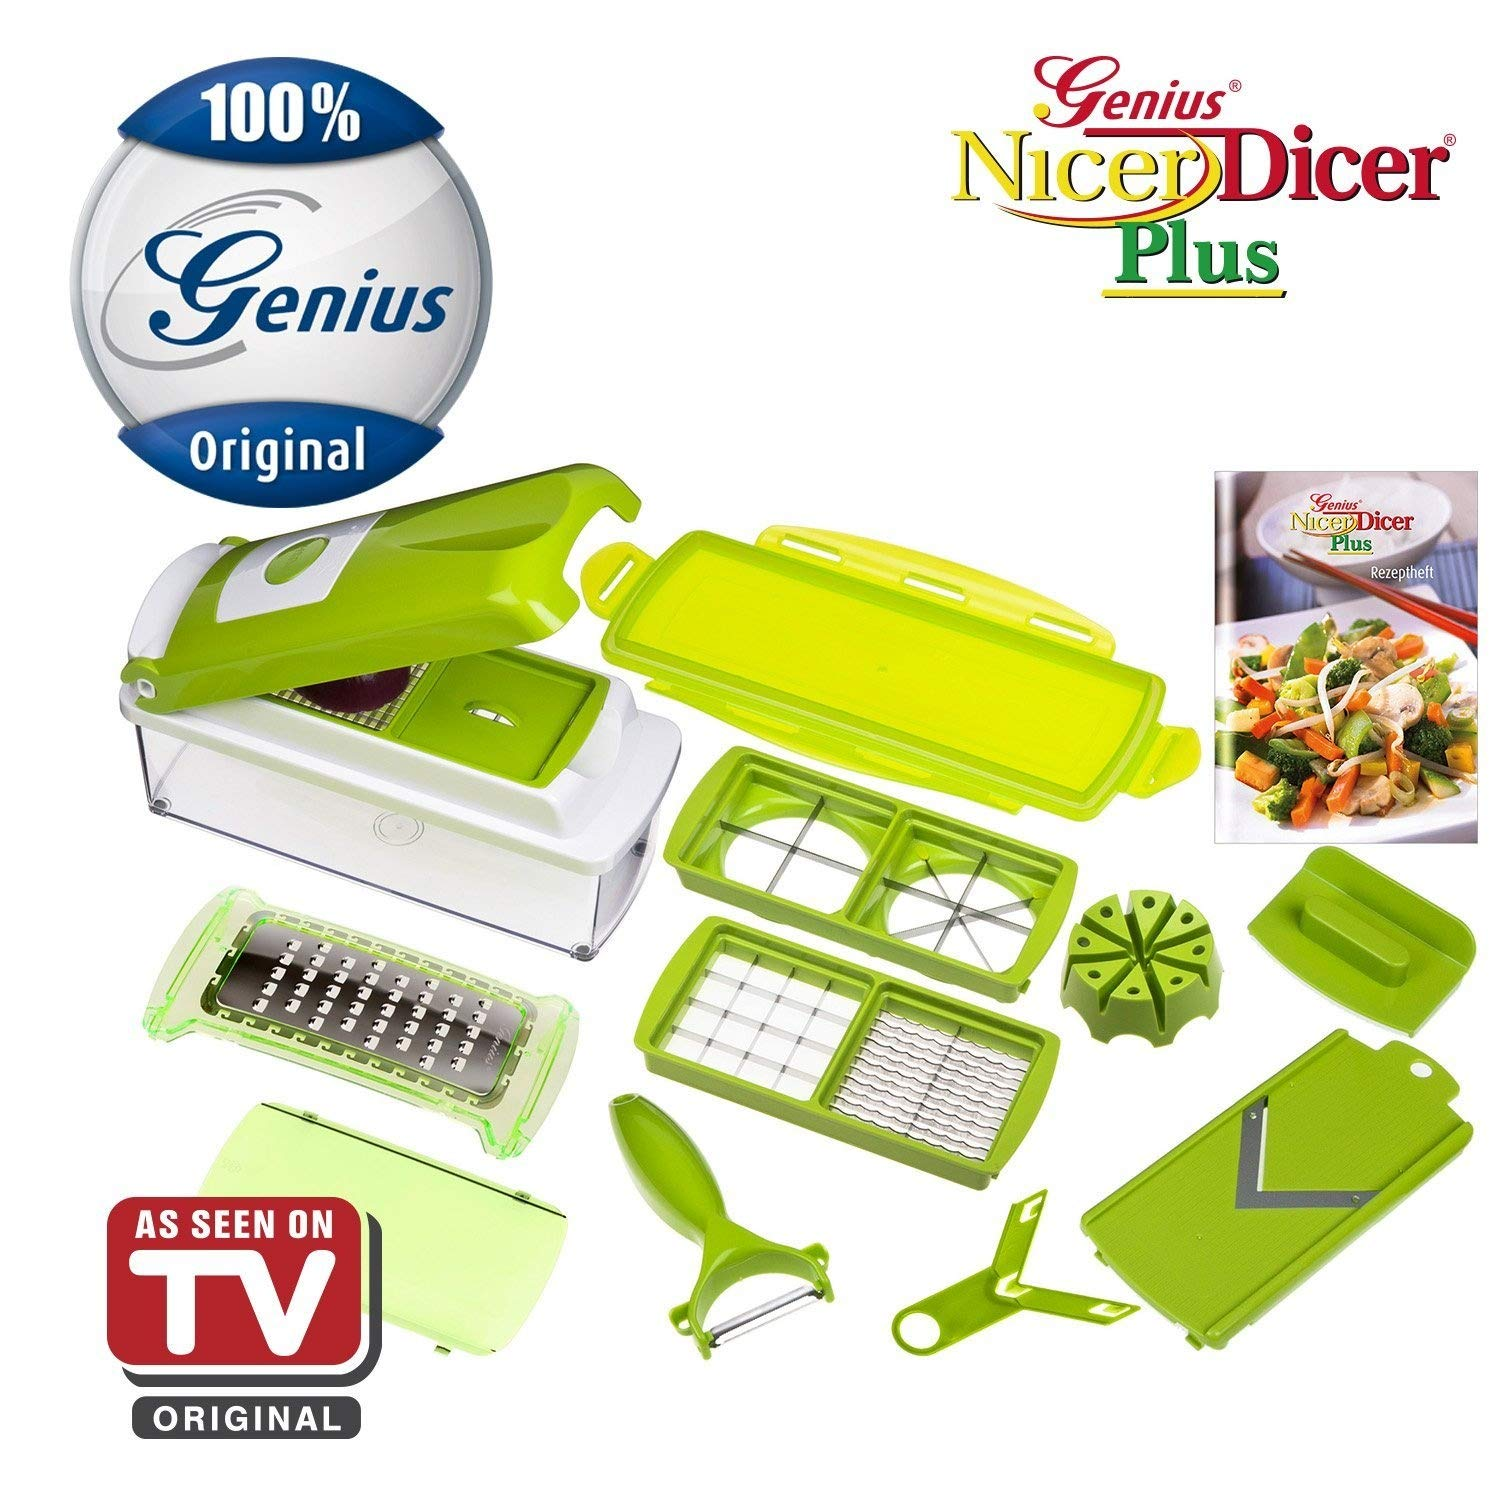 Nicer dicer plus by genius 13 pieces fruit vegetable slicer food chopper pro mandoline kitchen cutter dicer stainless steel as seen on tv